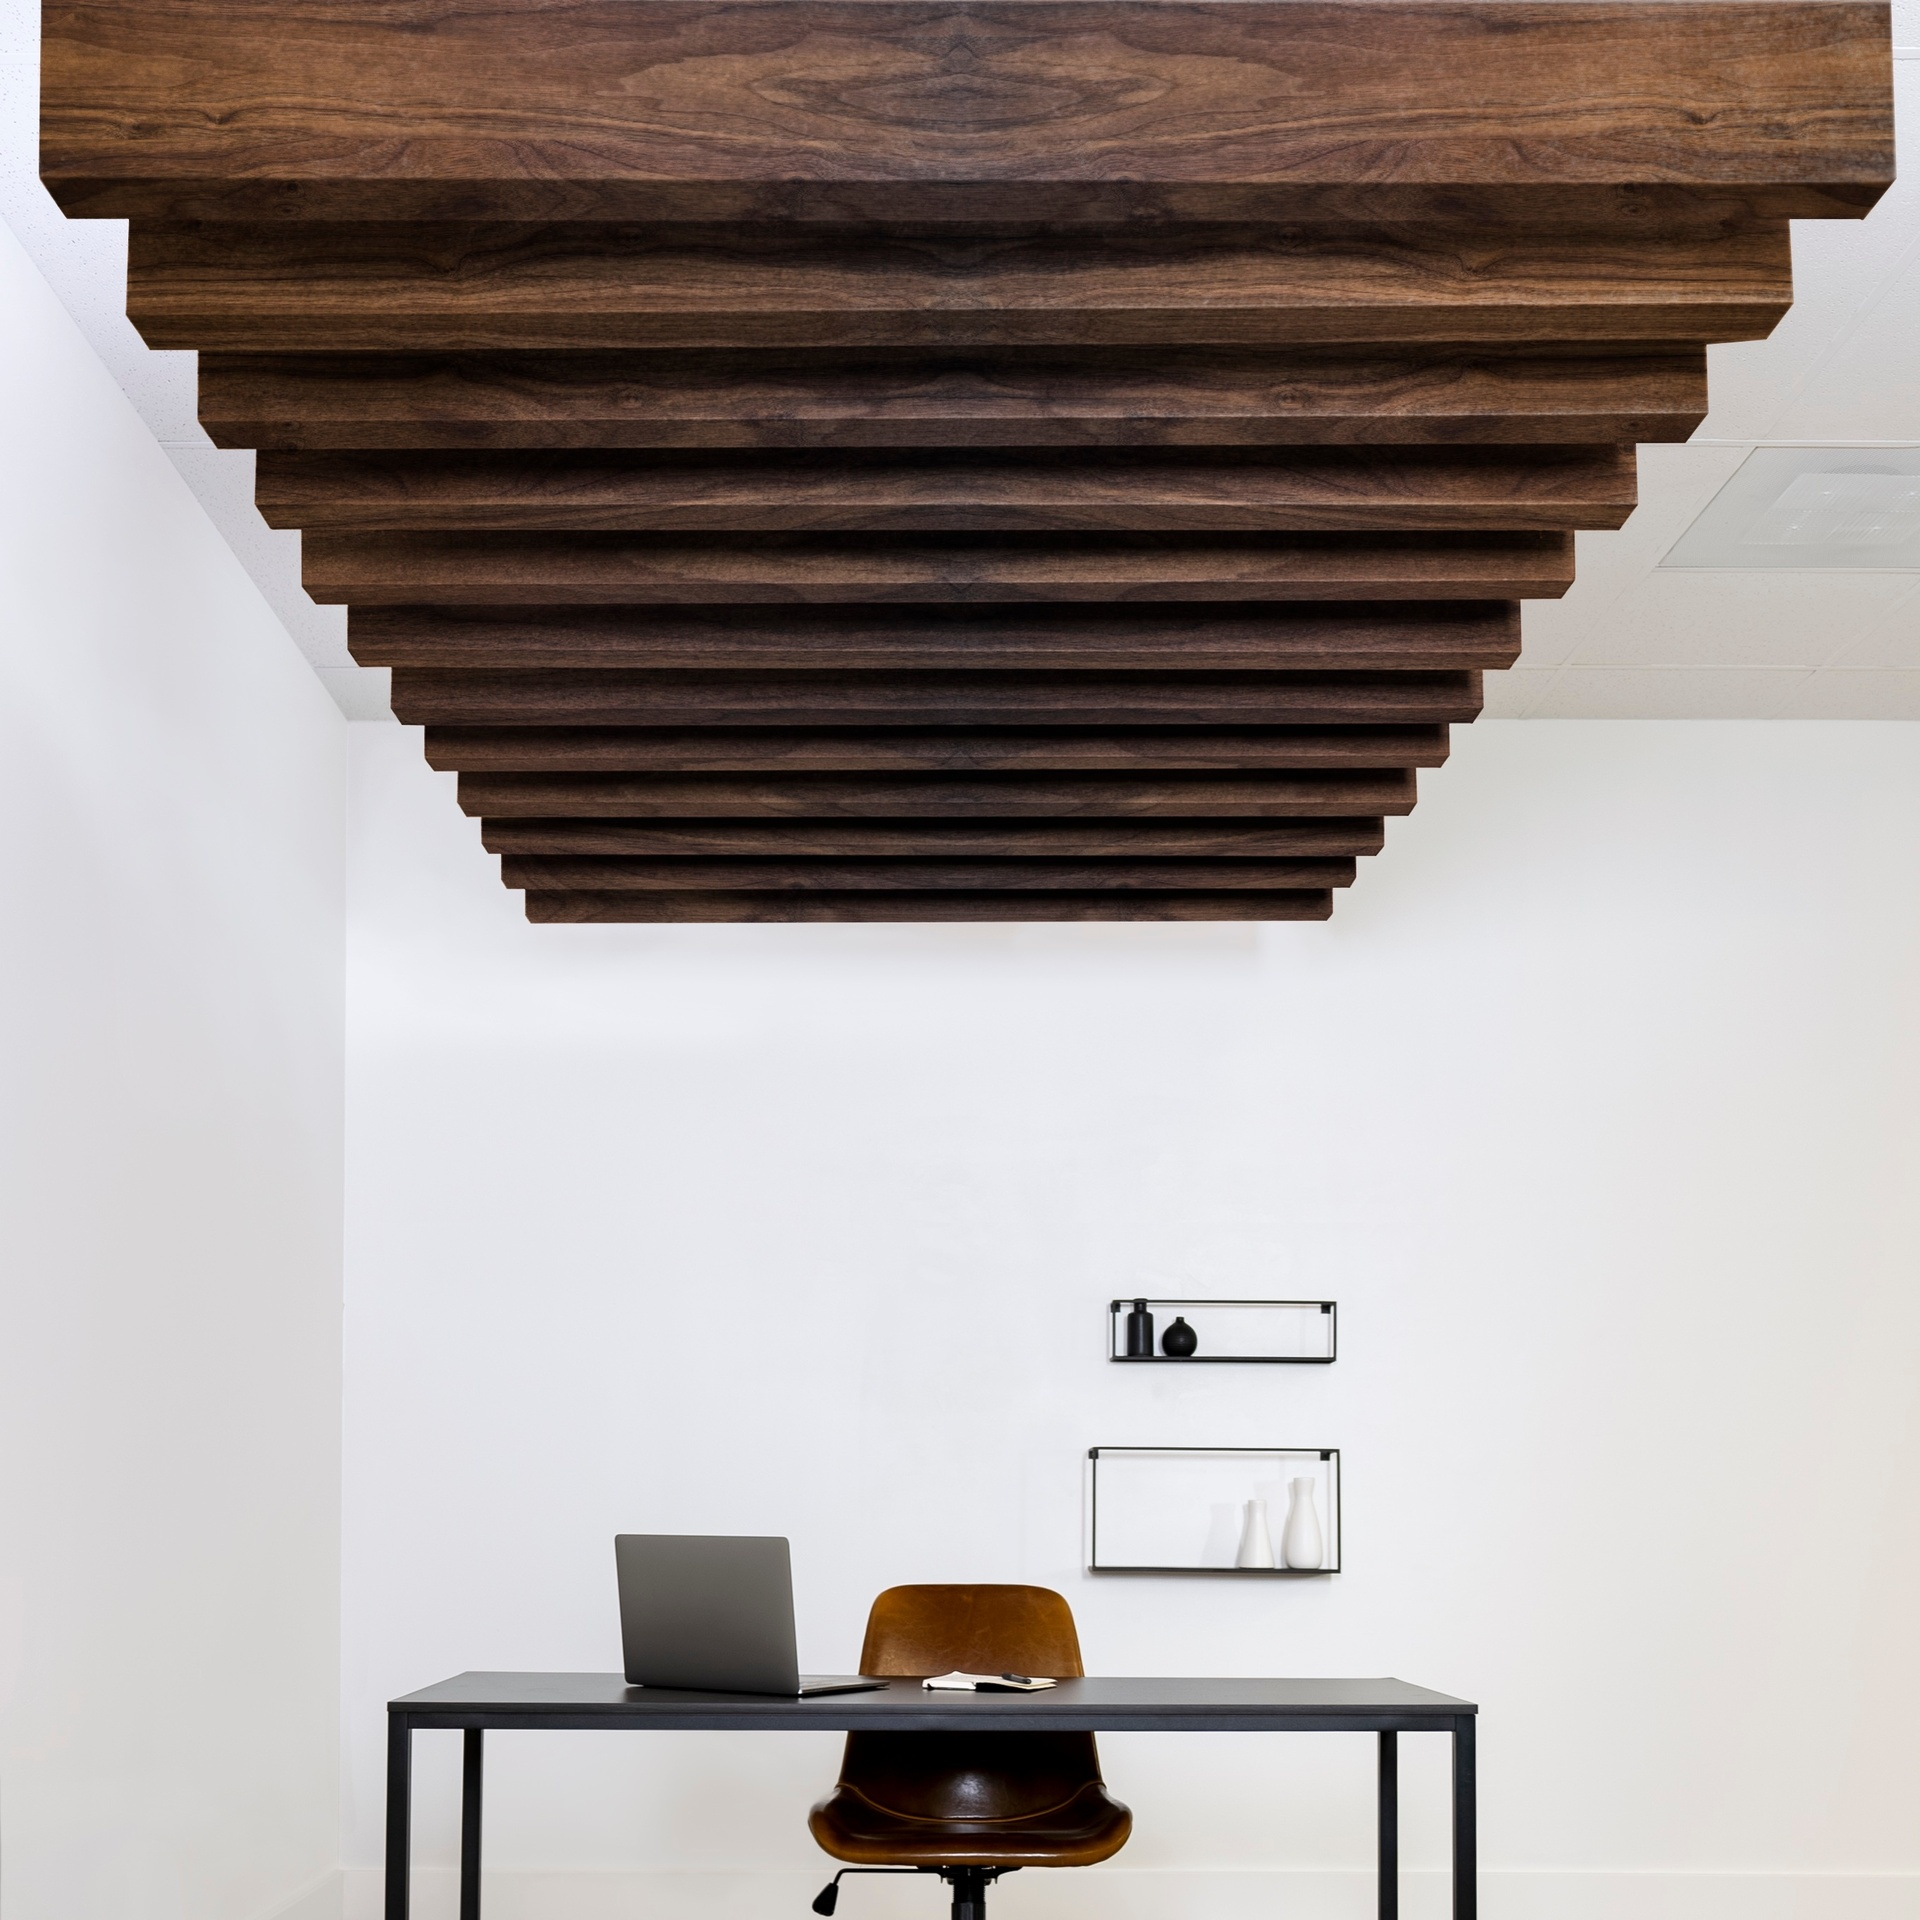 The Joist acoustic ceiling baffle is shown here in the dark walnut grain finish. This finish adds warmth to any space, while also providing sound absorption.